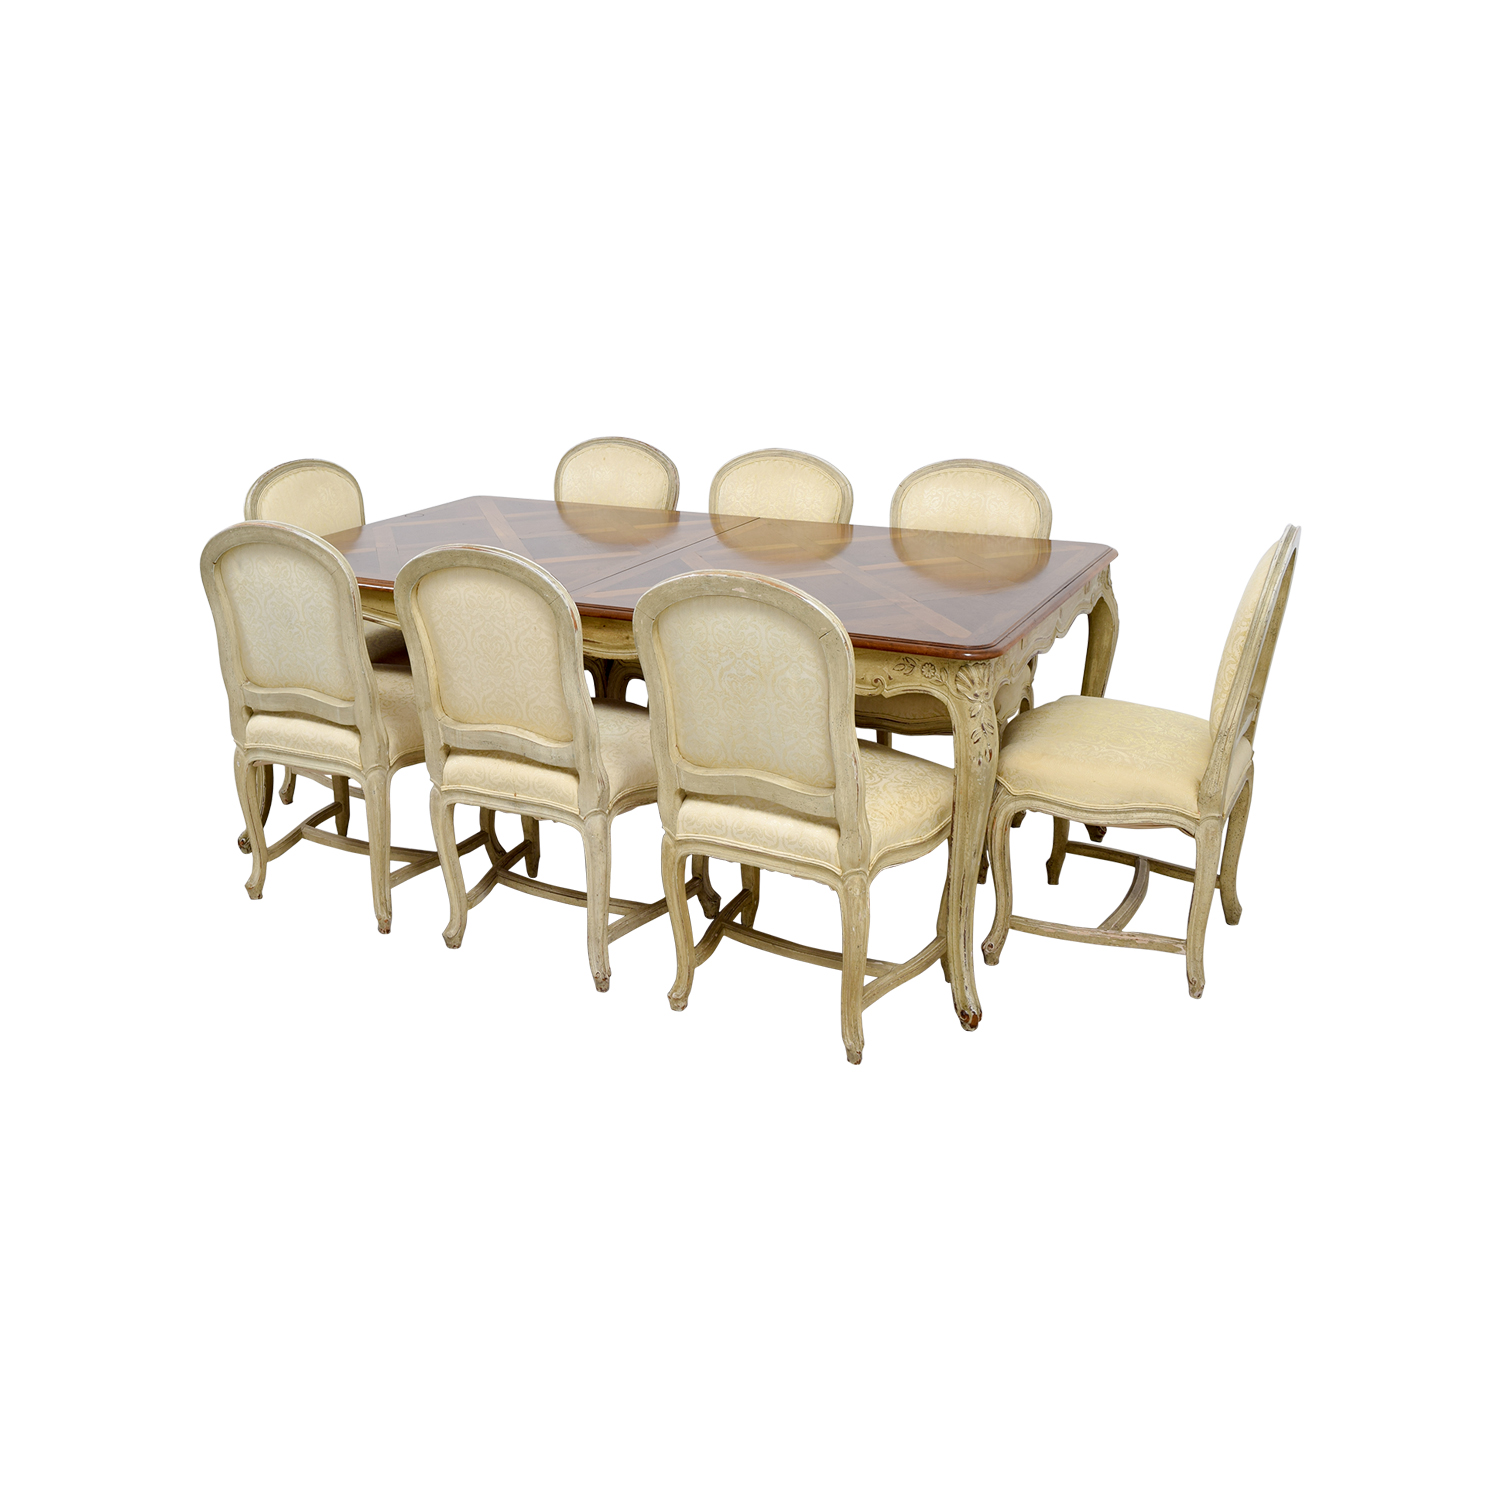 90 off formal dining table with ten chairs tables for Formal dining table